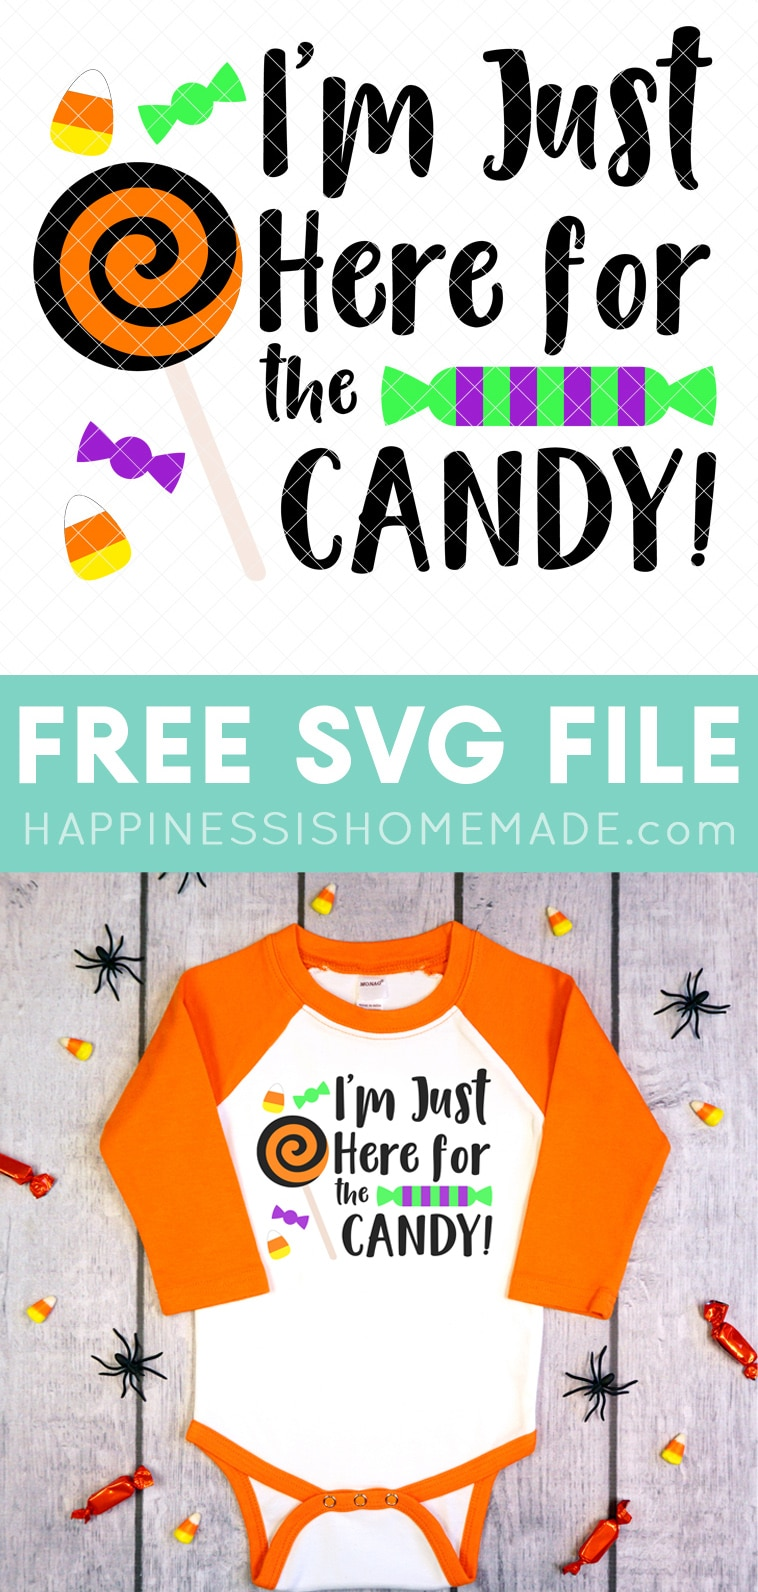 """Free Halloween SVG File: Get this Free Halloween SVG and let everyone know that """"I'm Just Here for the Candy!"""" this Halloween! Make your own trick or treat bags, shirts, and more! via @hihomemadeblog"""